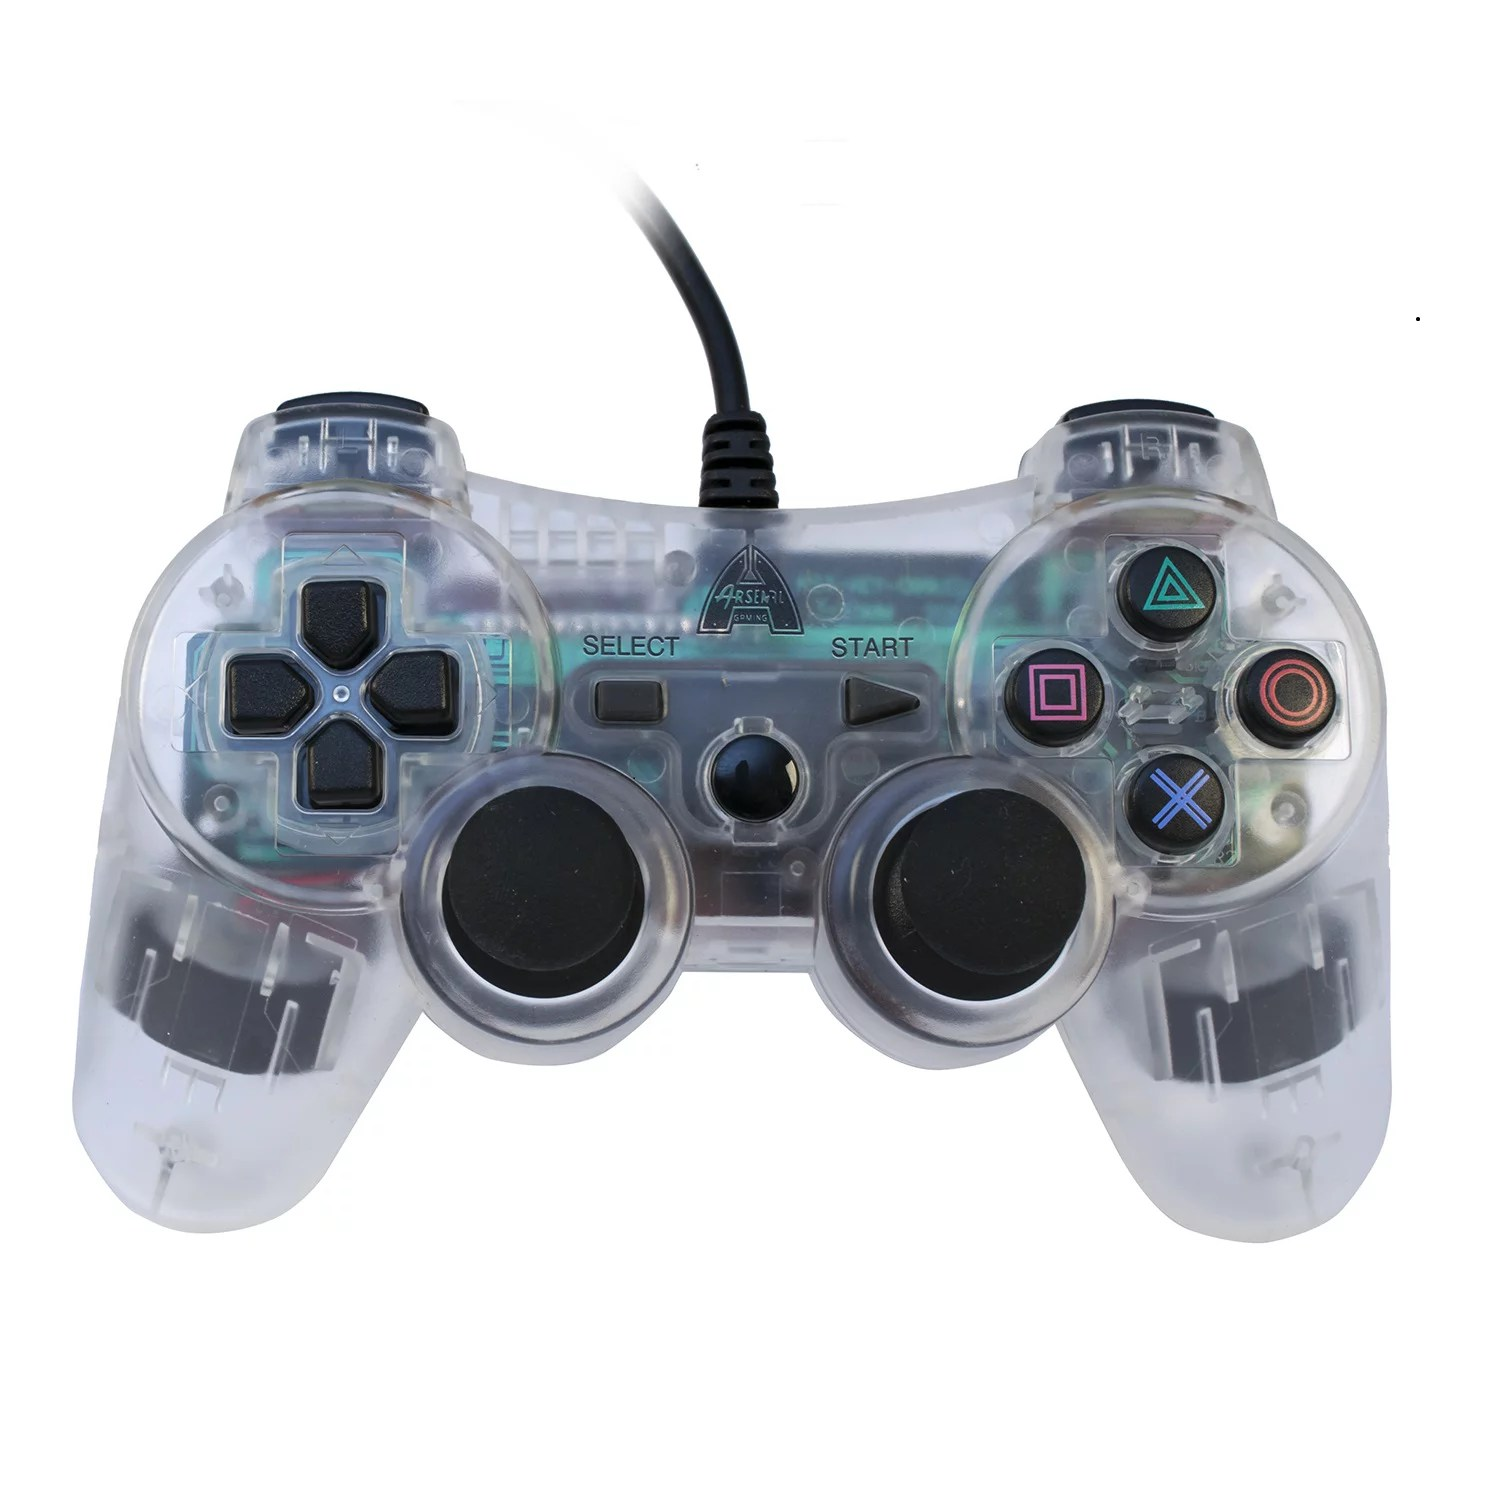 Arsenal Gaming PS3 Wired Controller. Clear with Lights - Walmart.com - Walmart.com